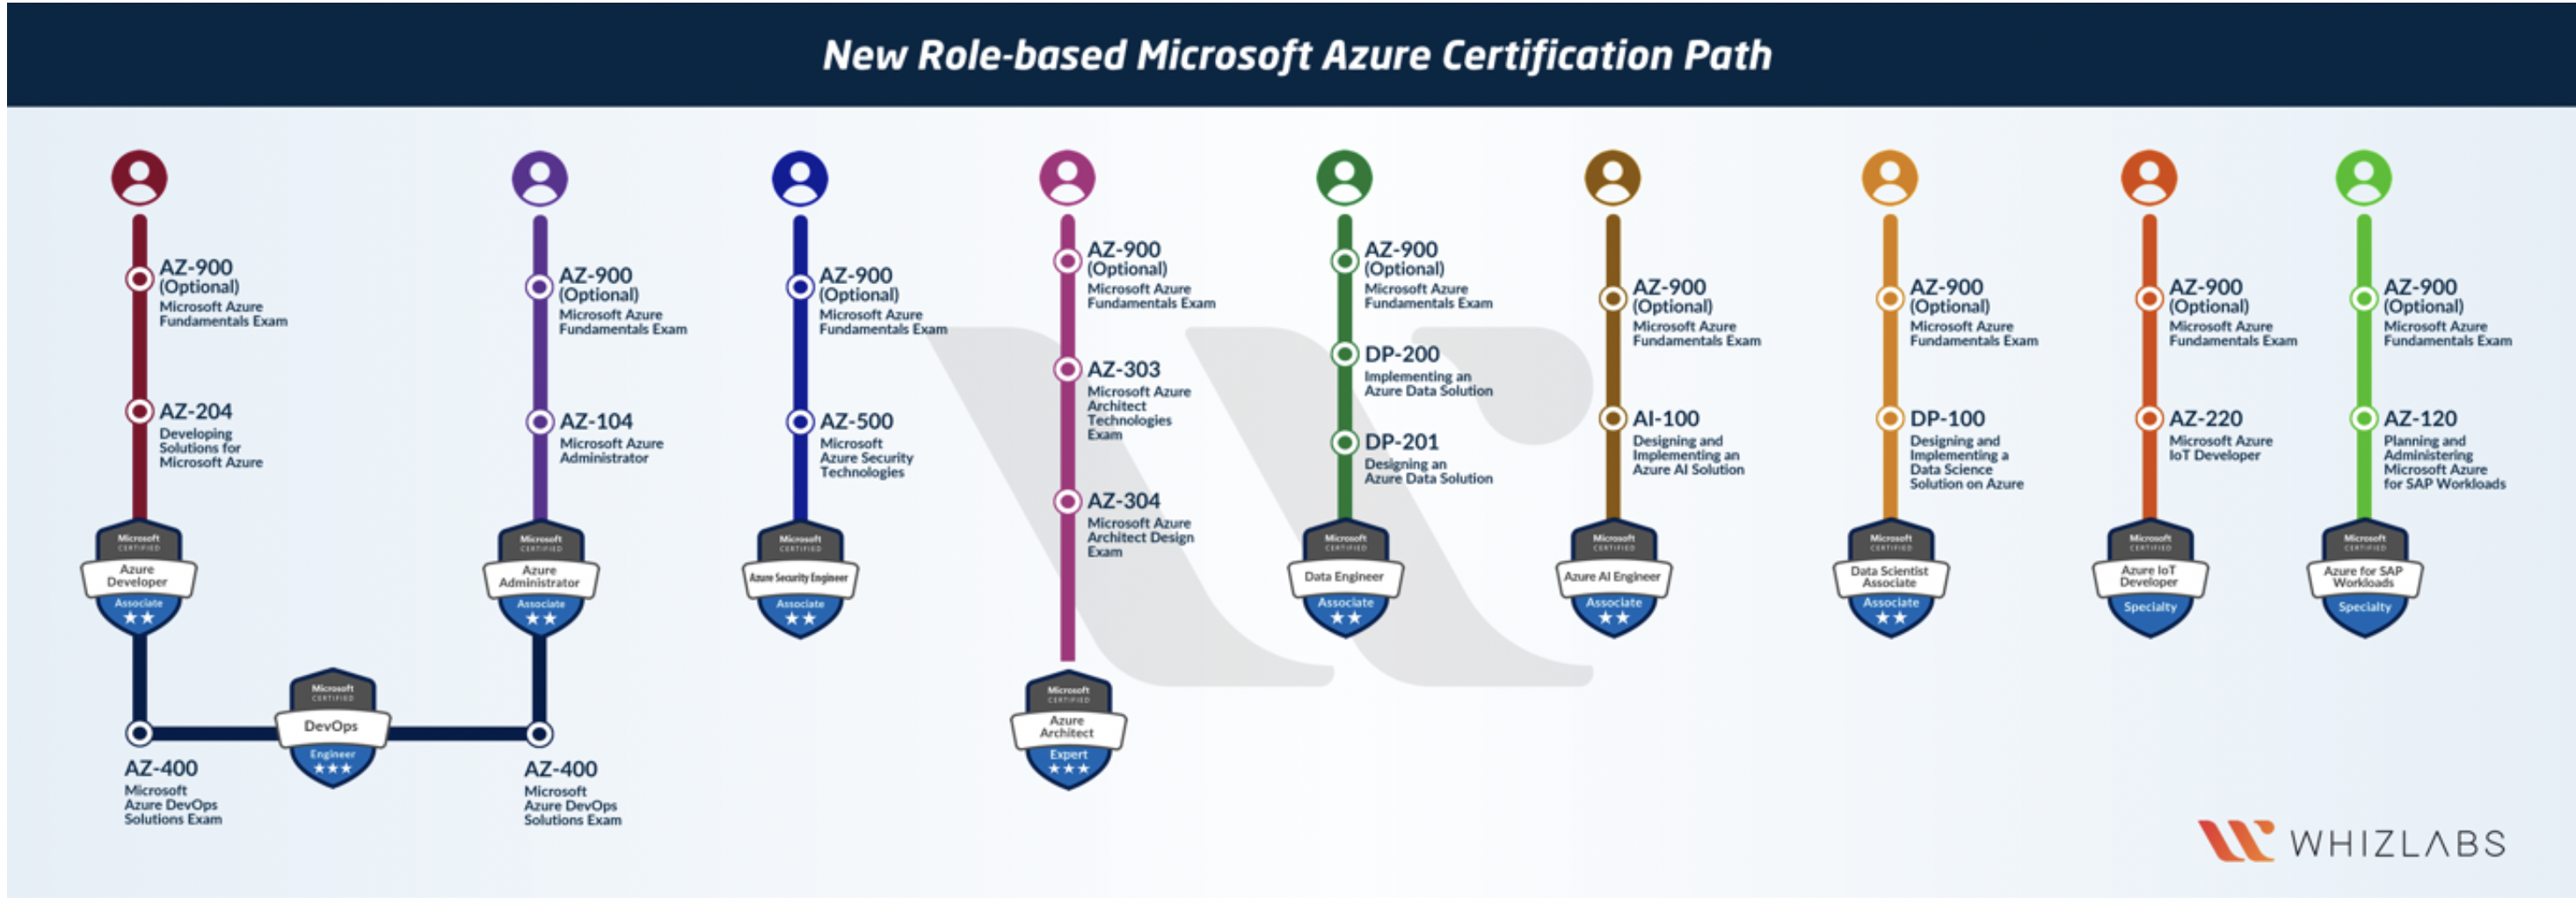 azure certification microsoft path certifications roadmap cloud developer role based certificate certified chart fundamentals journey template java whizlabs diagram takes